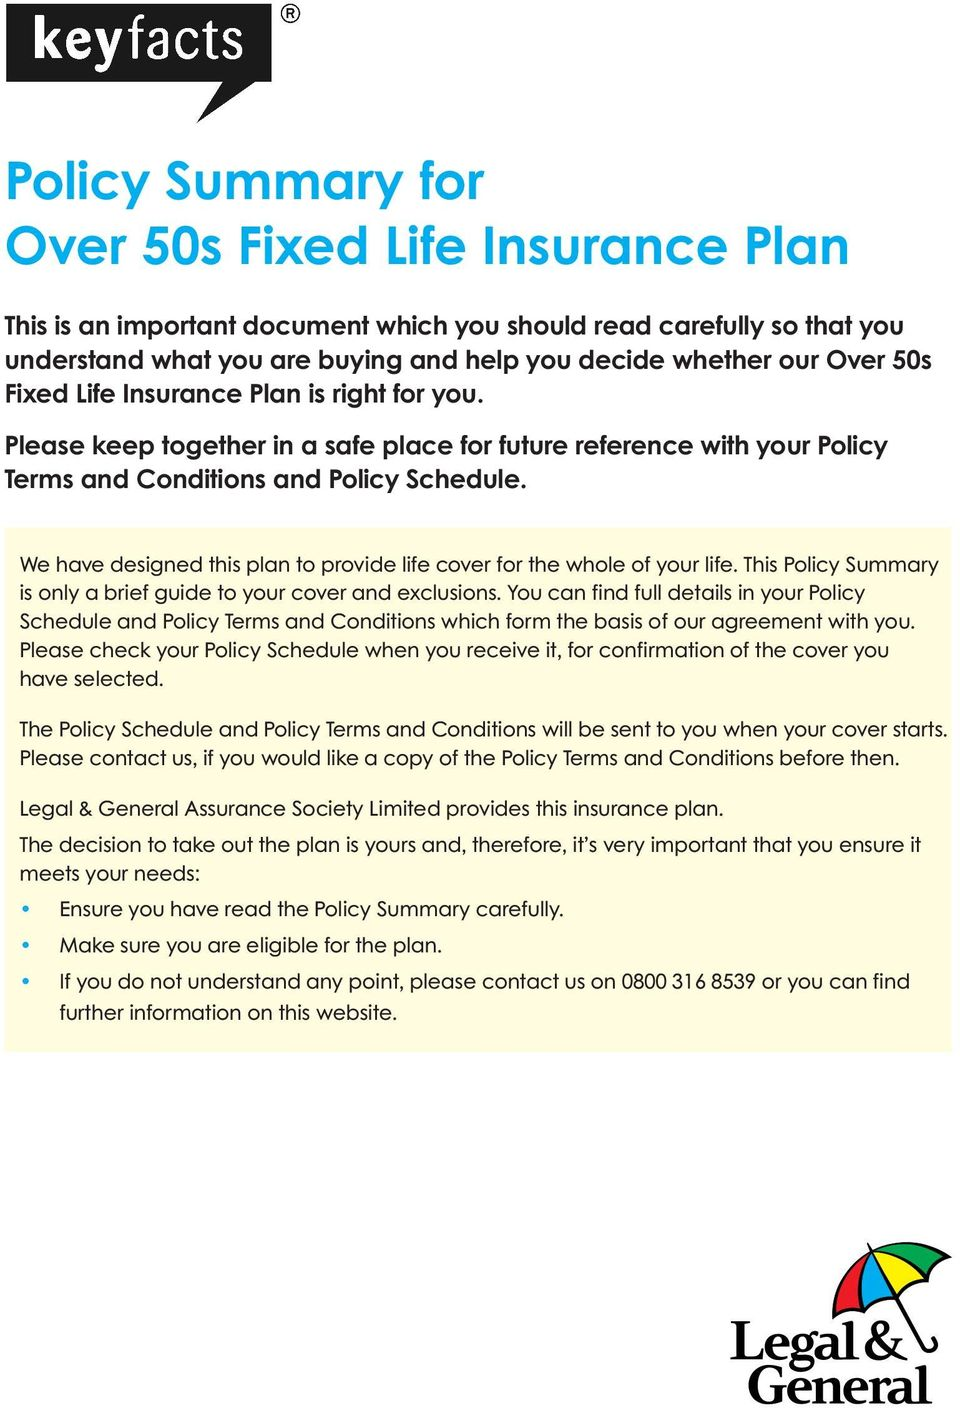 We have designed this plan to provide life cover for the whole of your life. This Policy Summary is only a brief guide to your cover and exclusions.